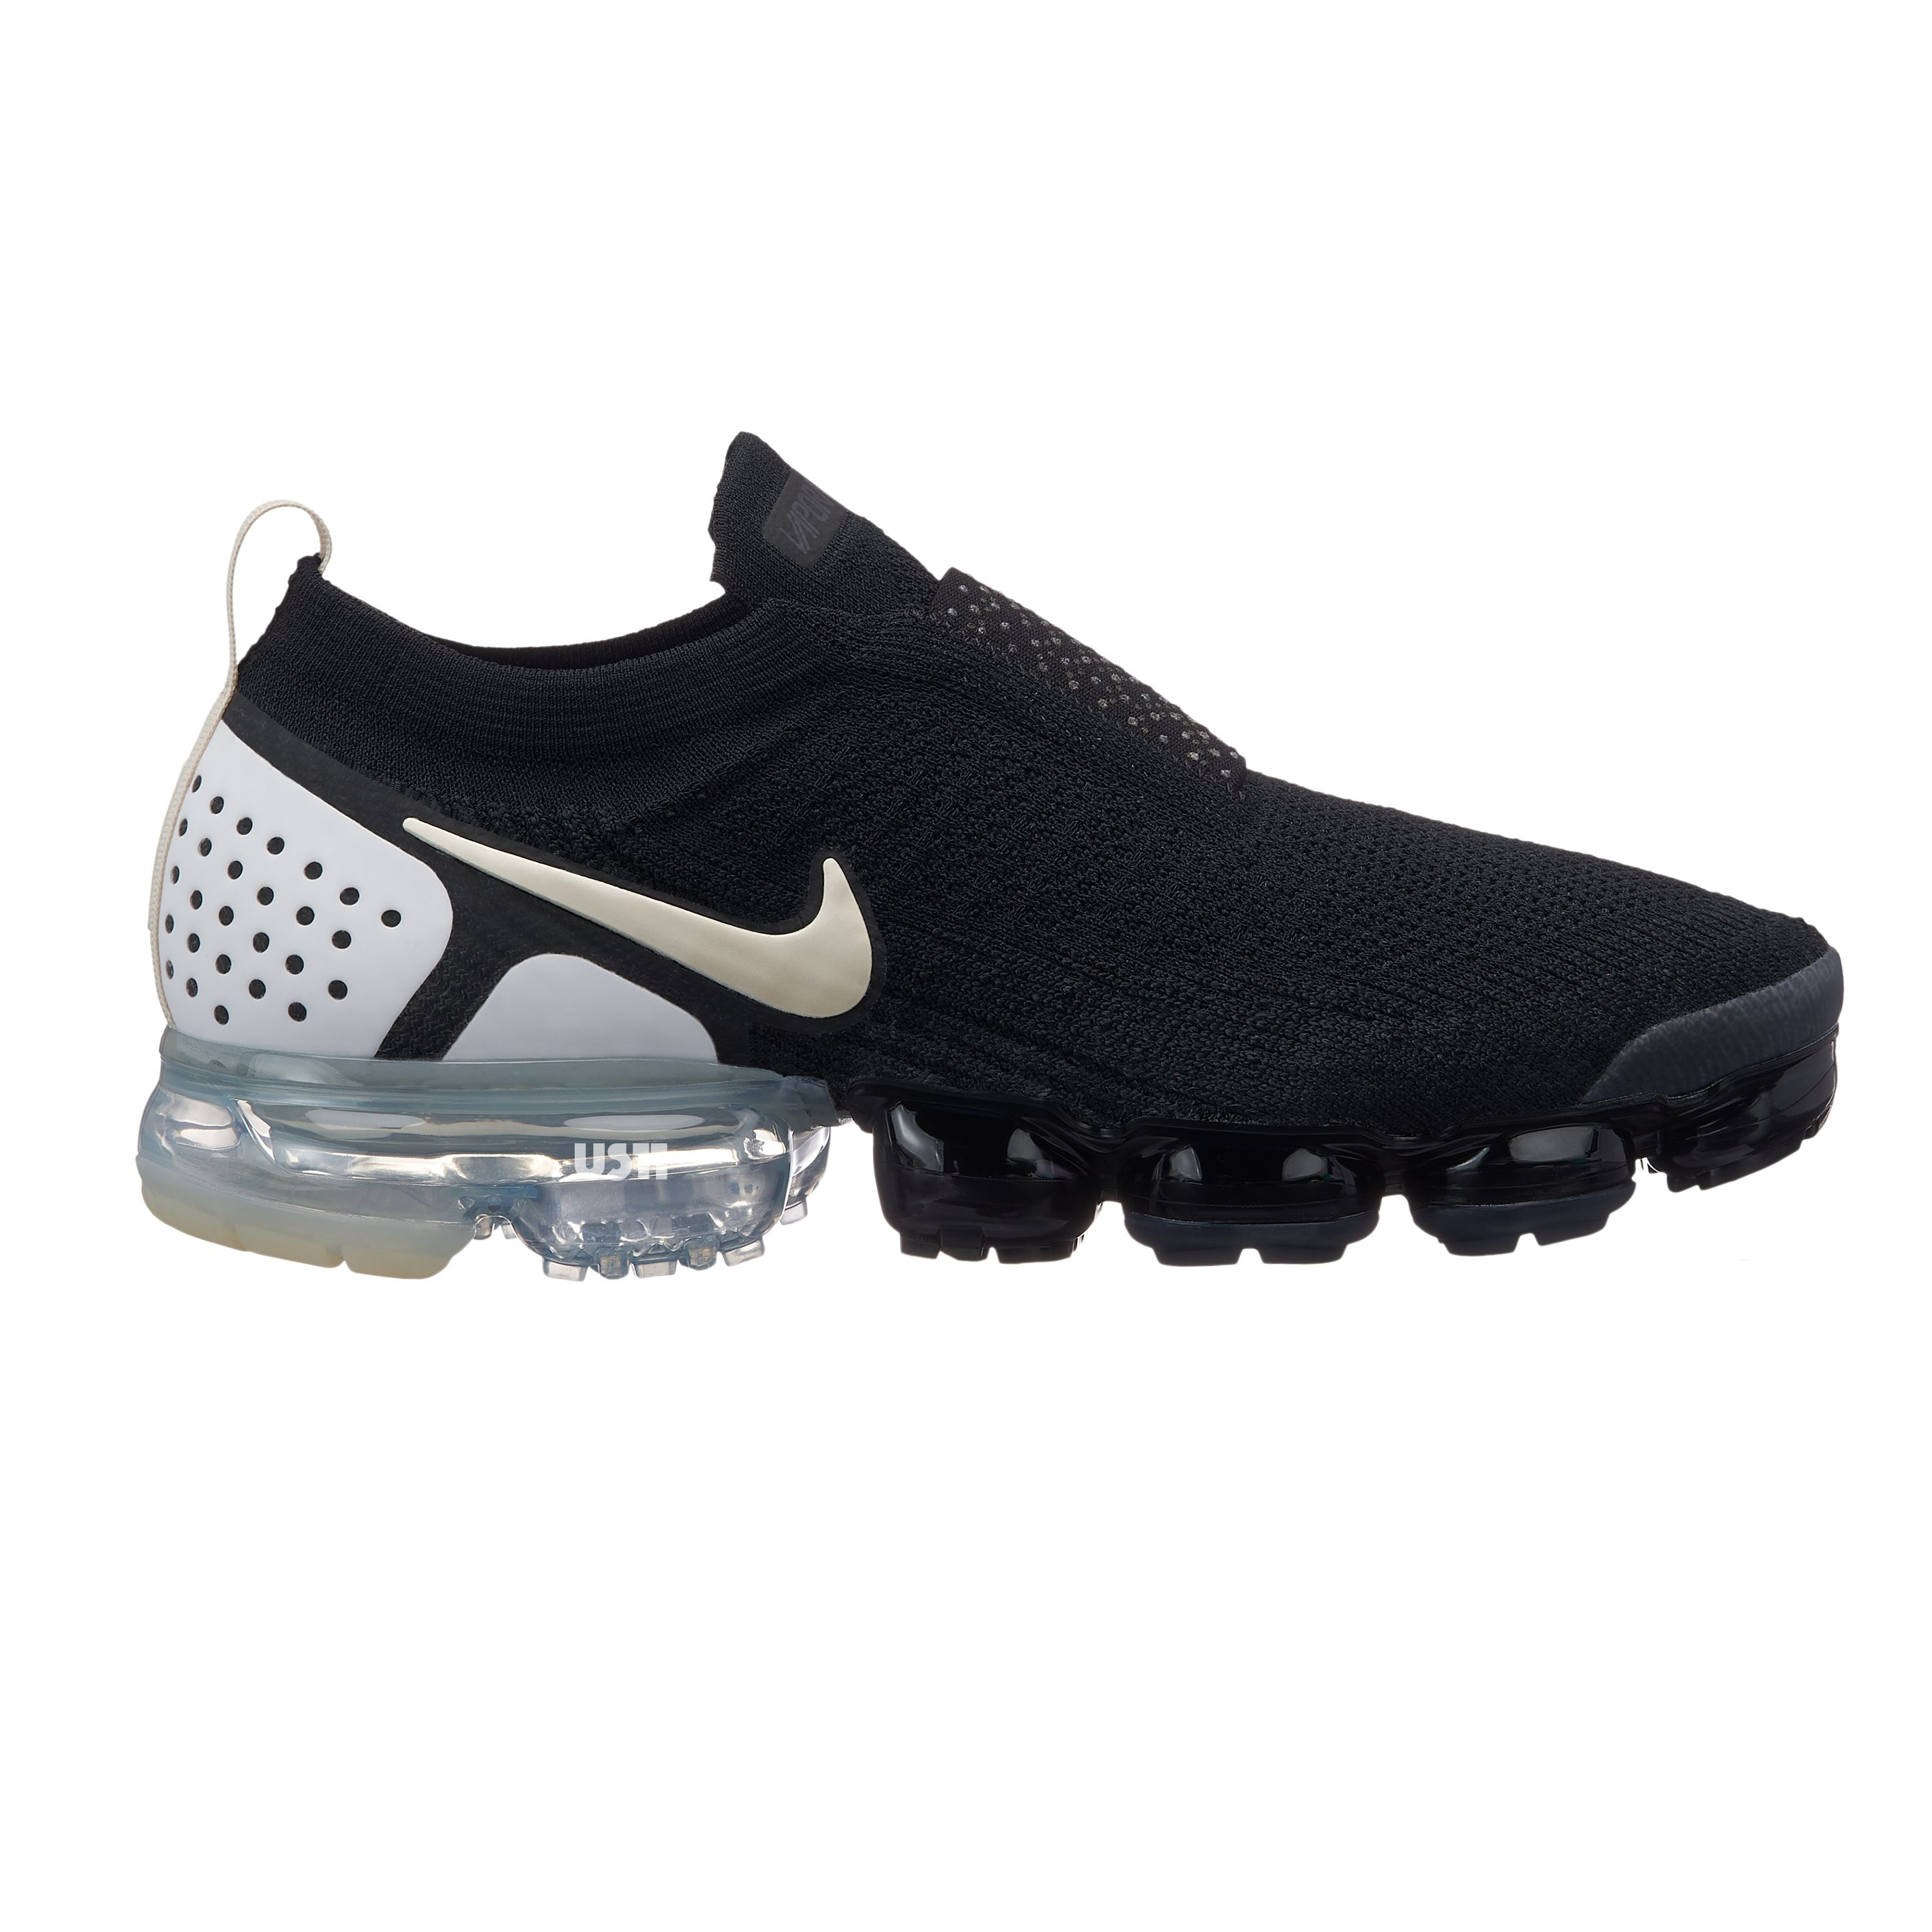 ebb09b88ccab The Nike Air VaporMax Flyknit Moc 2 Surfaces Online - WearTesters